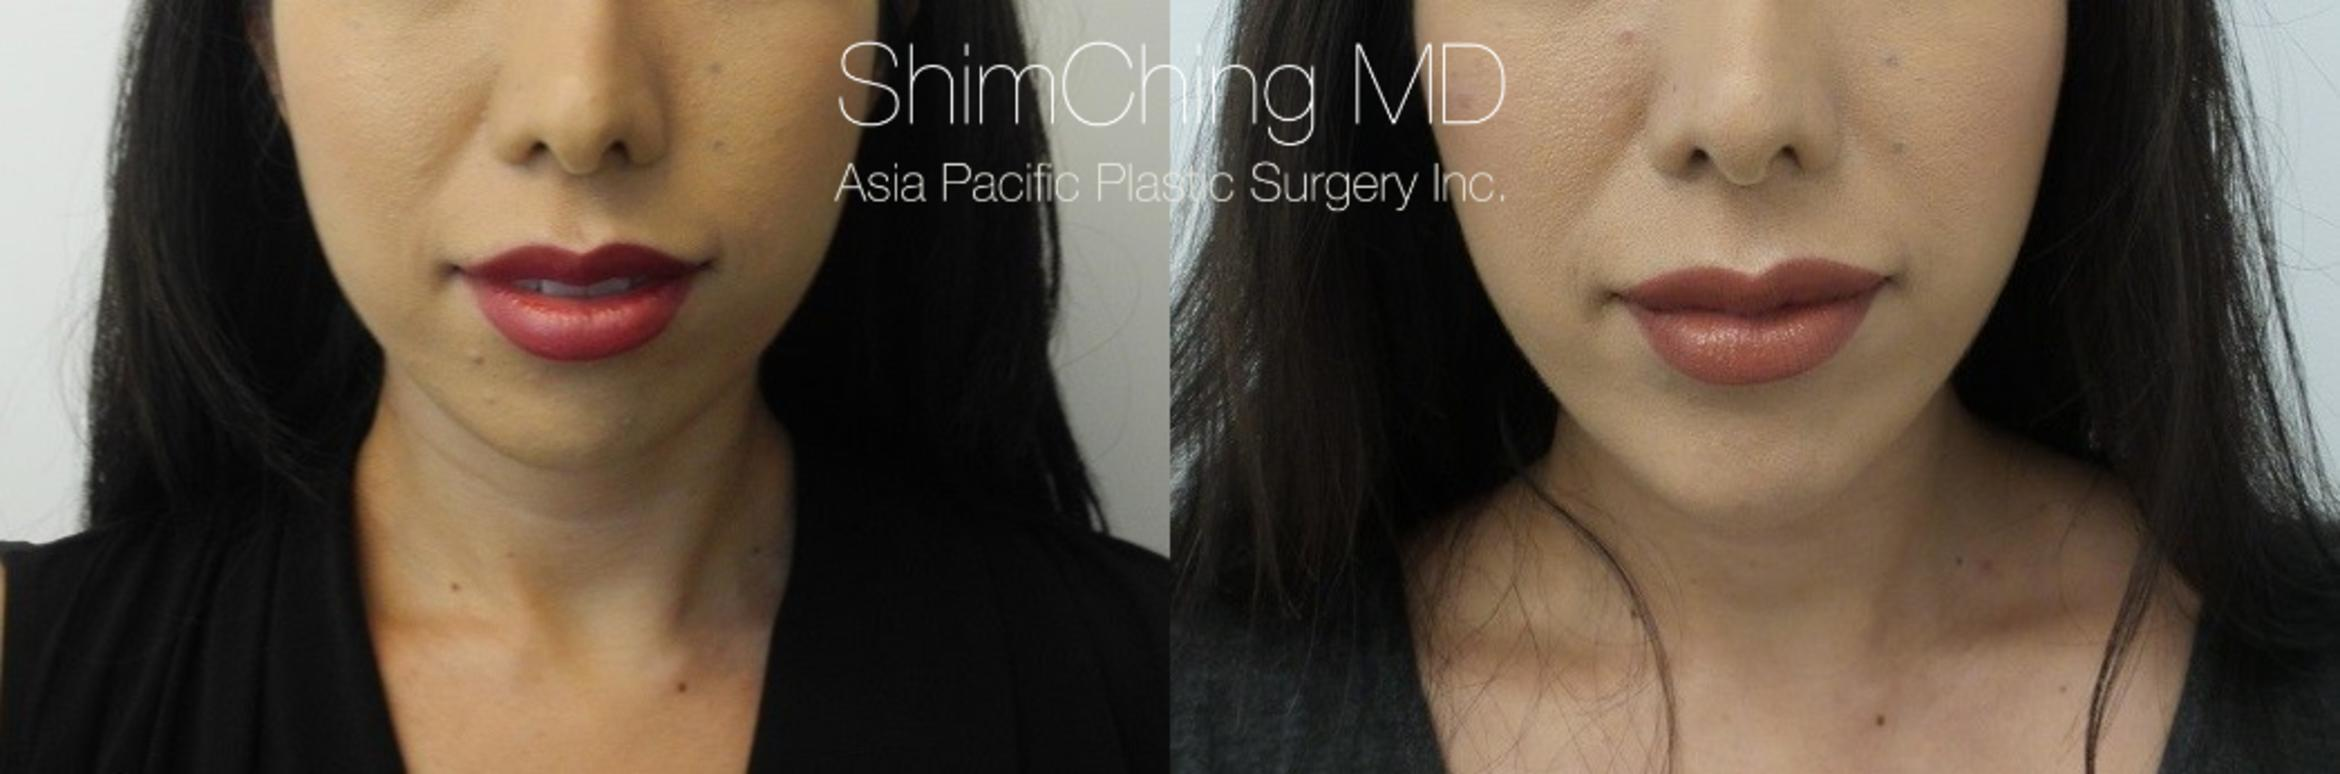 Chin Case 17 Before & After View #1 | Honolulu, HI | Shim Ching, MD: Asia Pacific Plastic Surgery